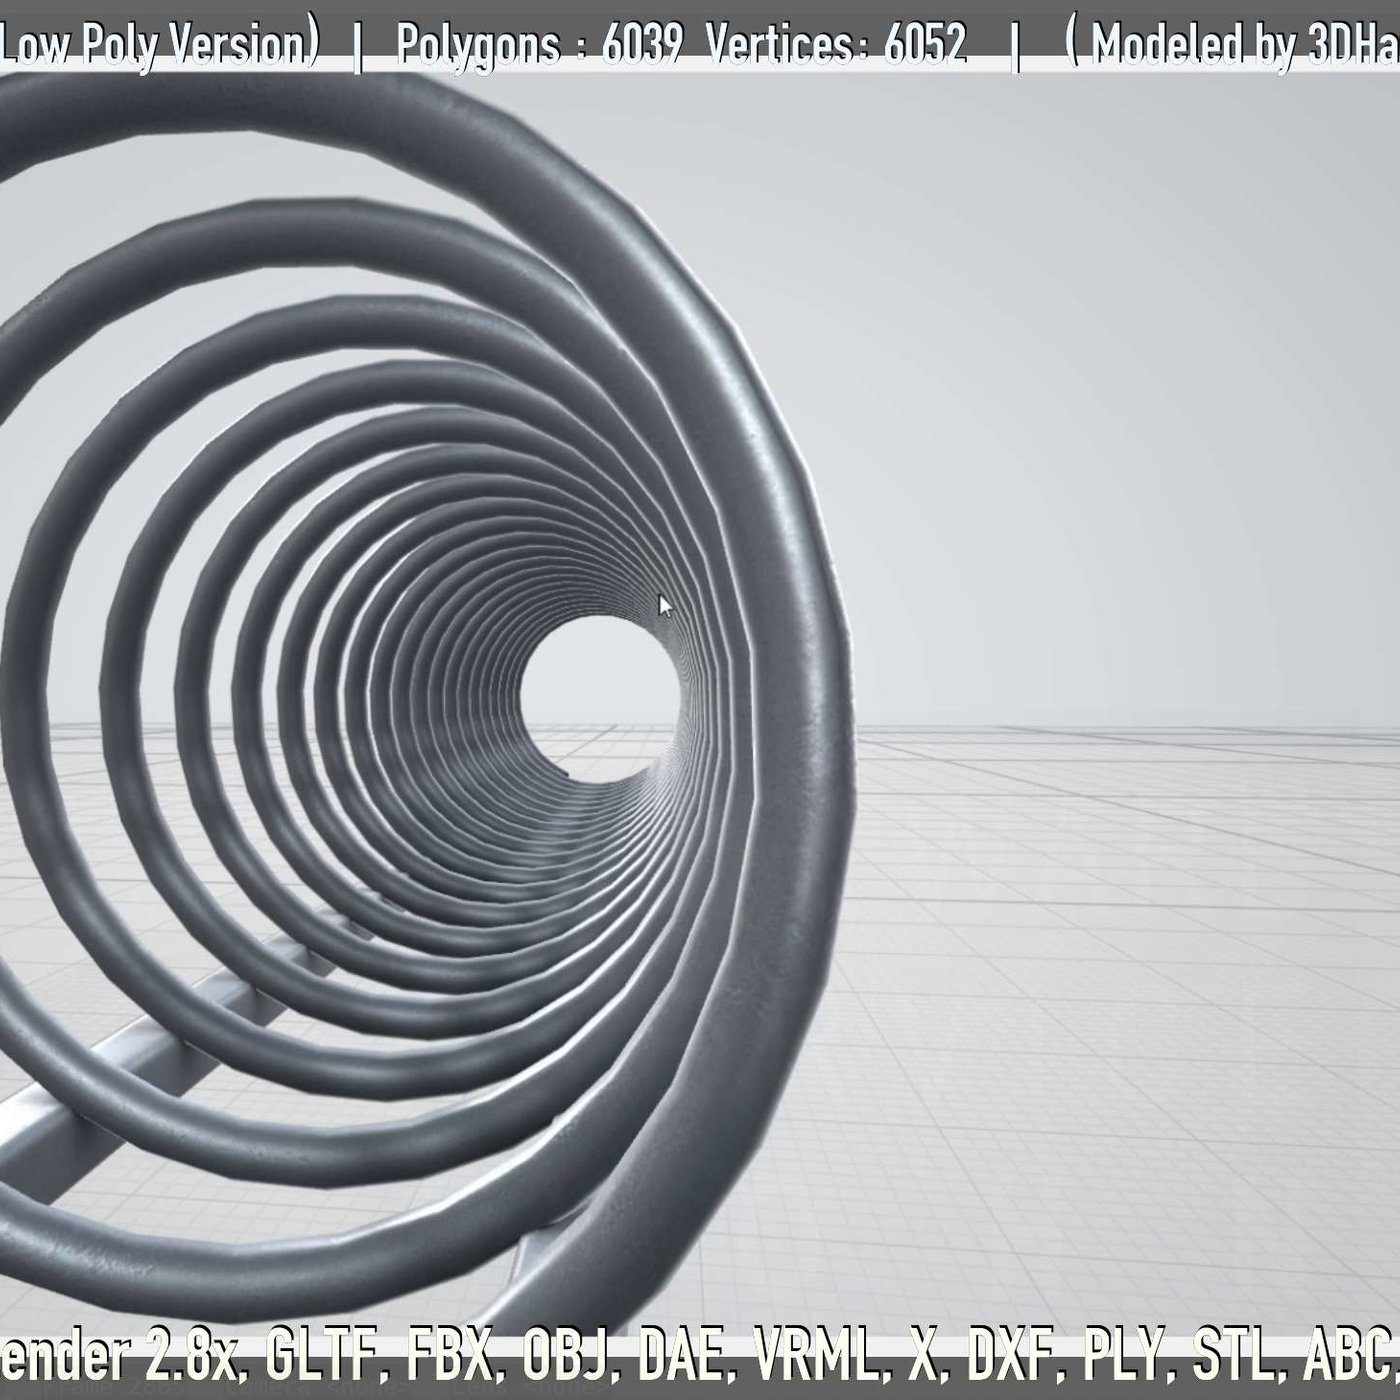 Low-poly version of the spiral bike stand [2]